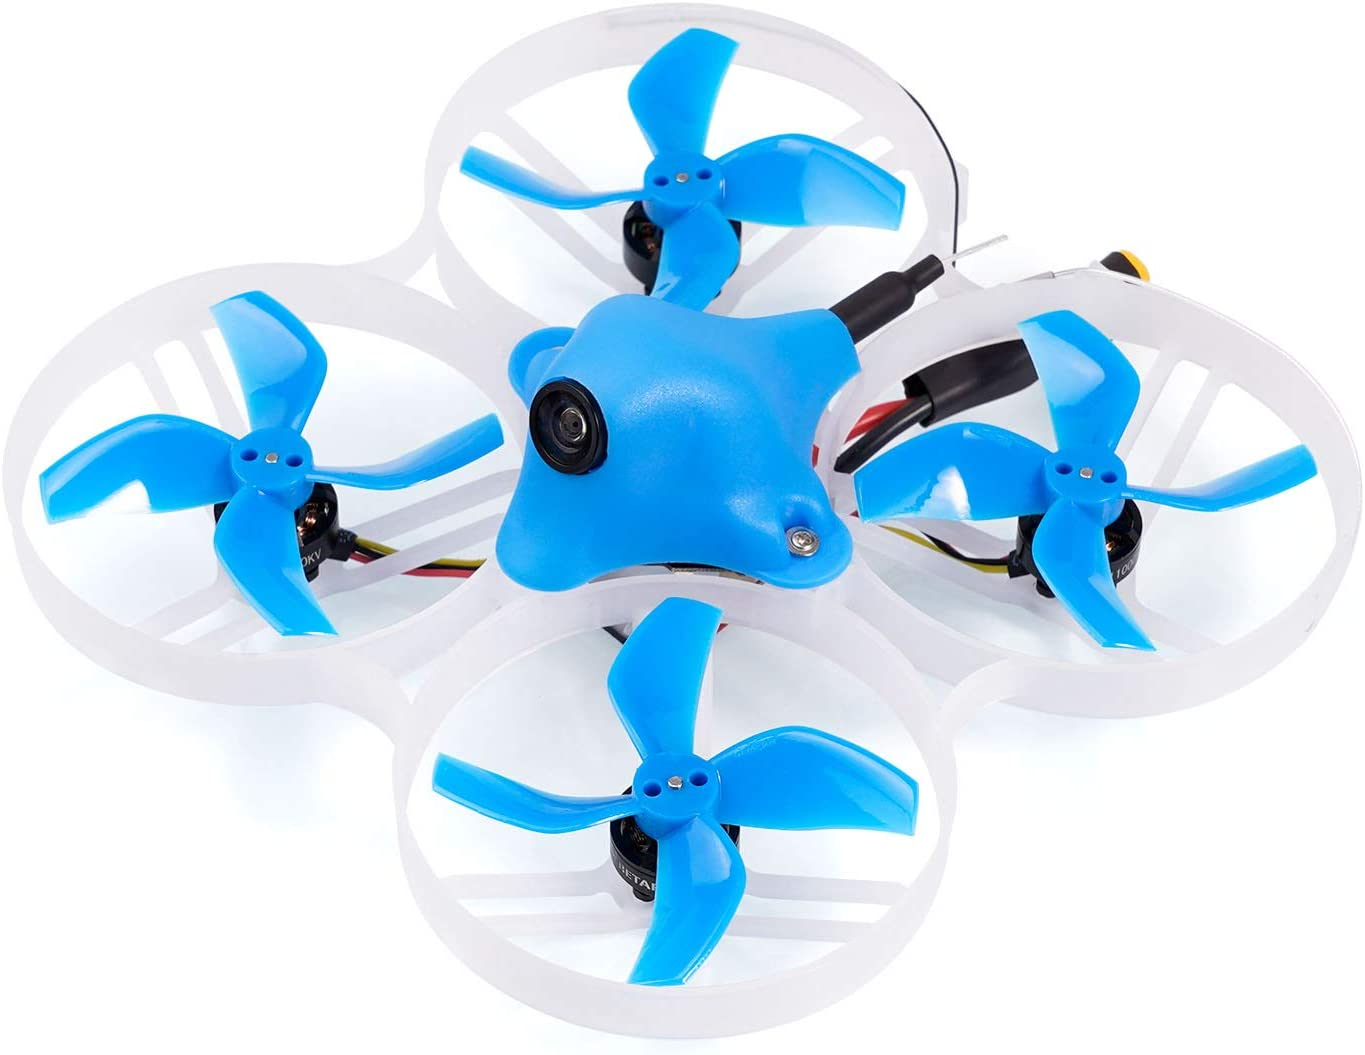 BETAFPV Meteor75 1S Brushless Whoop Drone Frsky D8 with BT2.0 Connector F4 AIO 1S FC VTX 18000KV 1102 Motor C01 Pro Camera for Tiny Whoop Micro FPV Racing Whoop Drone Quadcopter